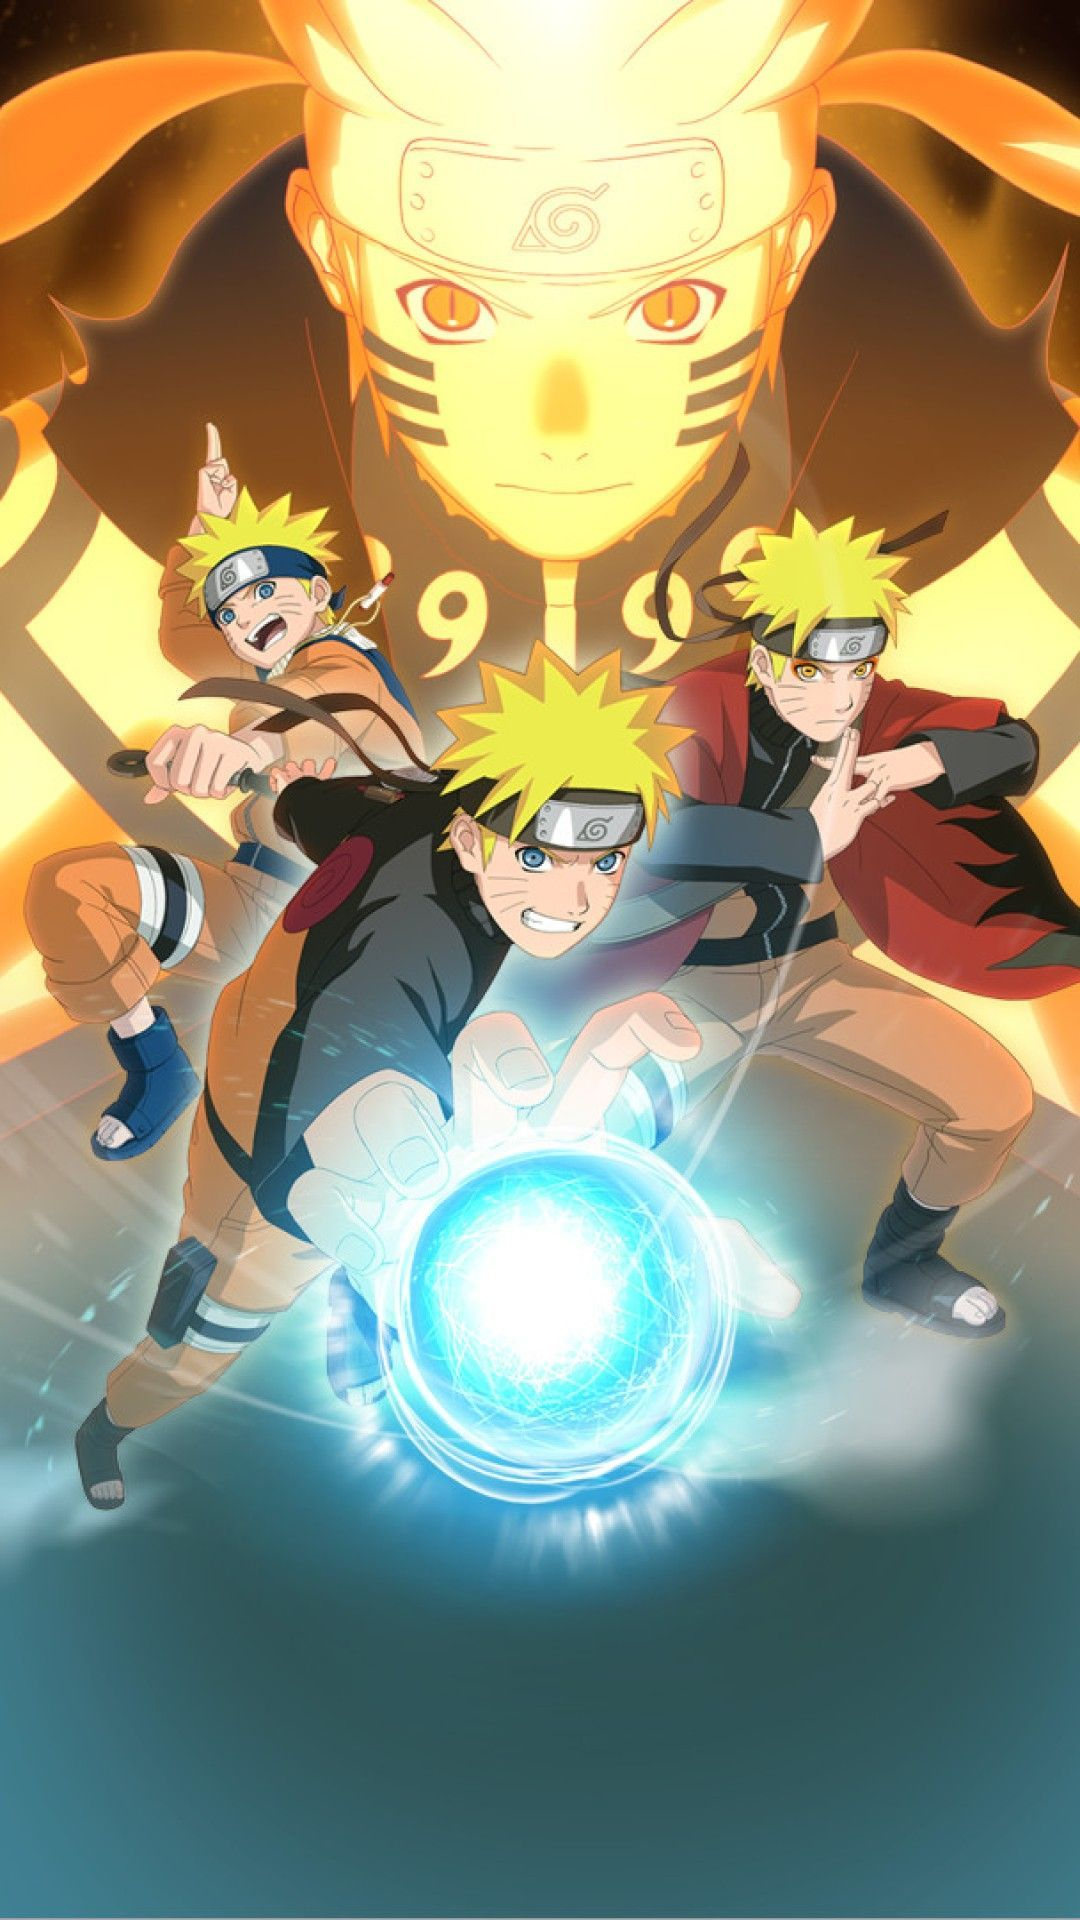 Wallpaper Phone Naruto Full Hd Narutowallpaper Wallpaper Phone Naruto Full Hd Naruto Shippuden Anime Wallpaper Naruto Shippuden Naruto Uzumaki